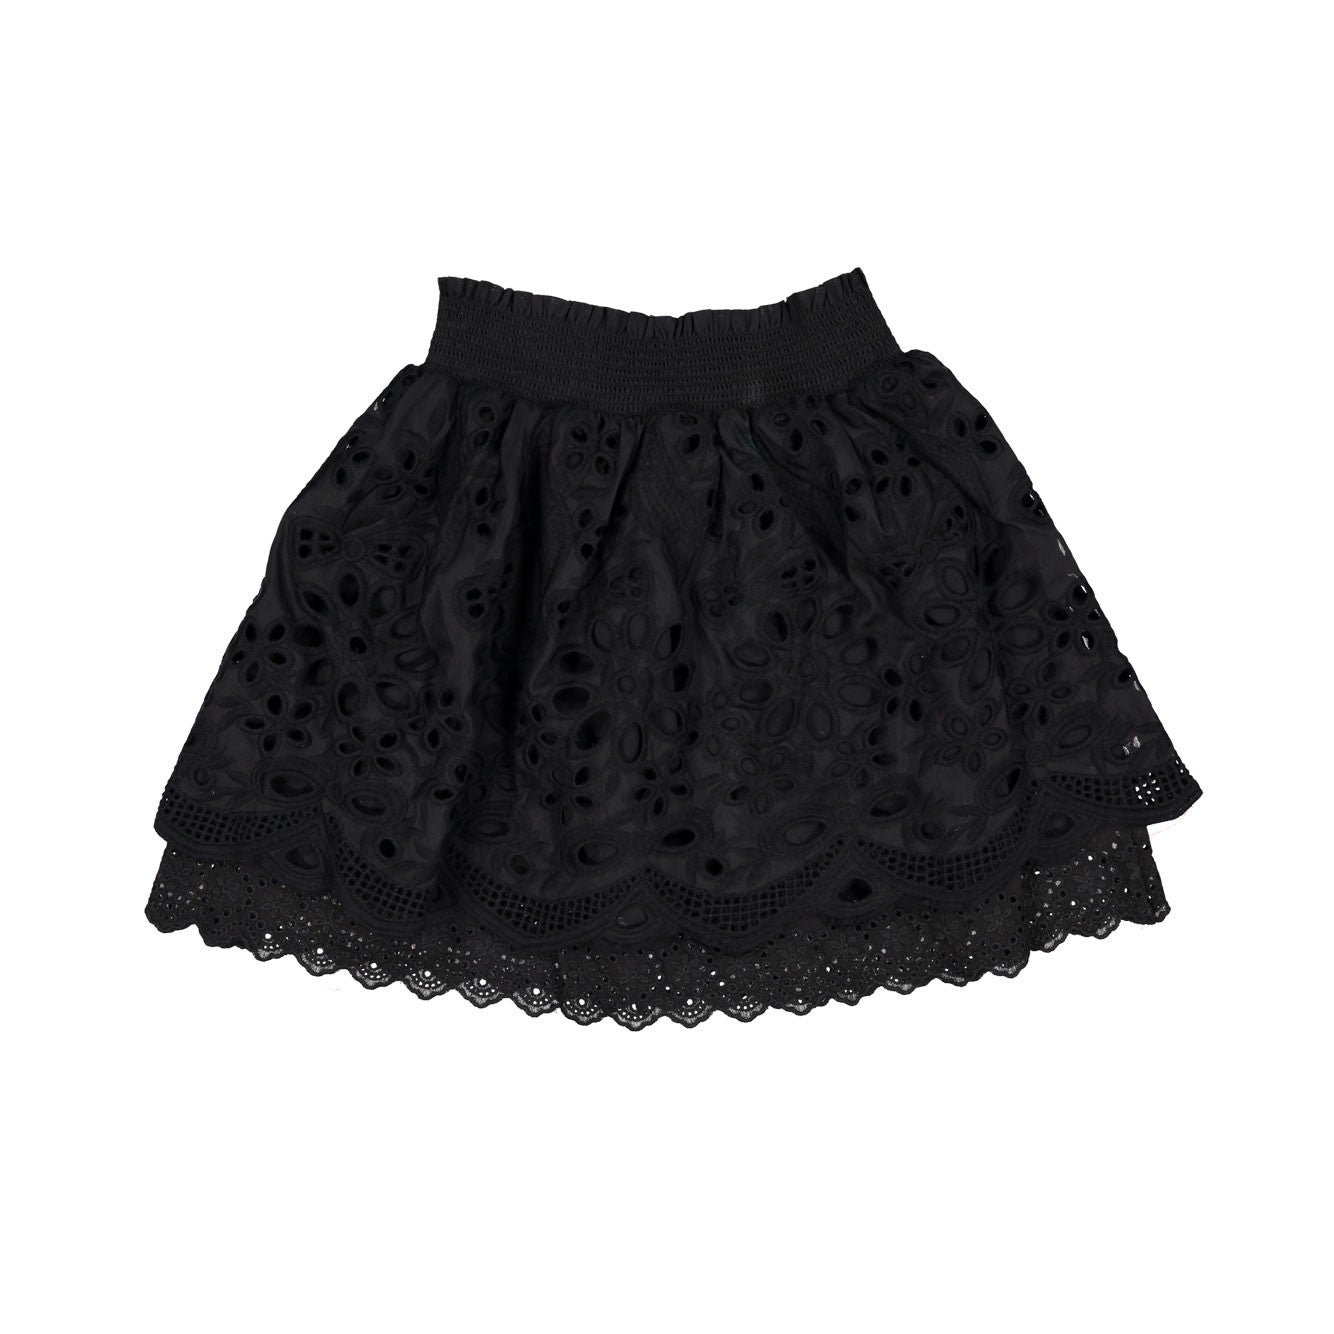 Remix Black Greta Skirt - Ladida